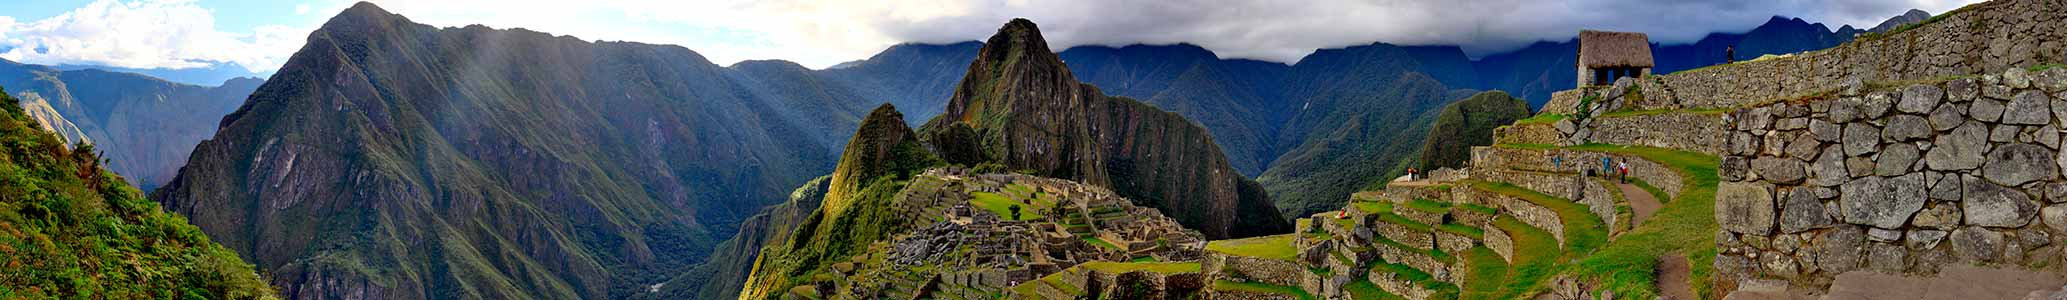 Tour Peru – Cusco Wonderfull 5 Dias / 4 Noches – TURISTA PERUANO